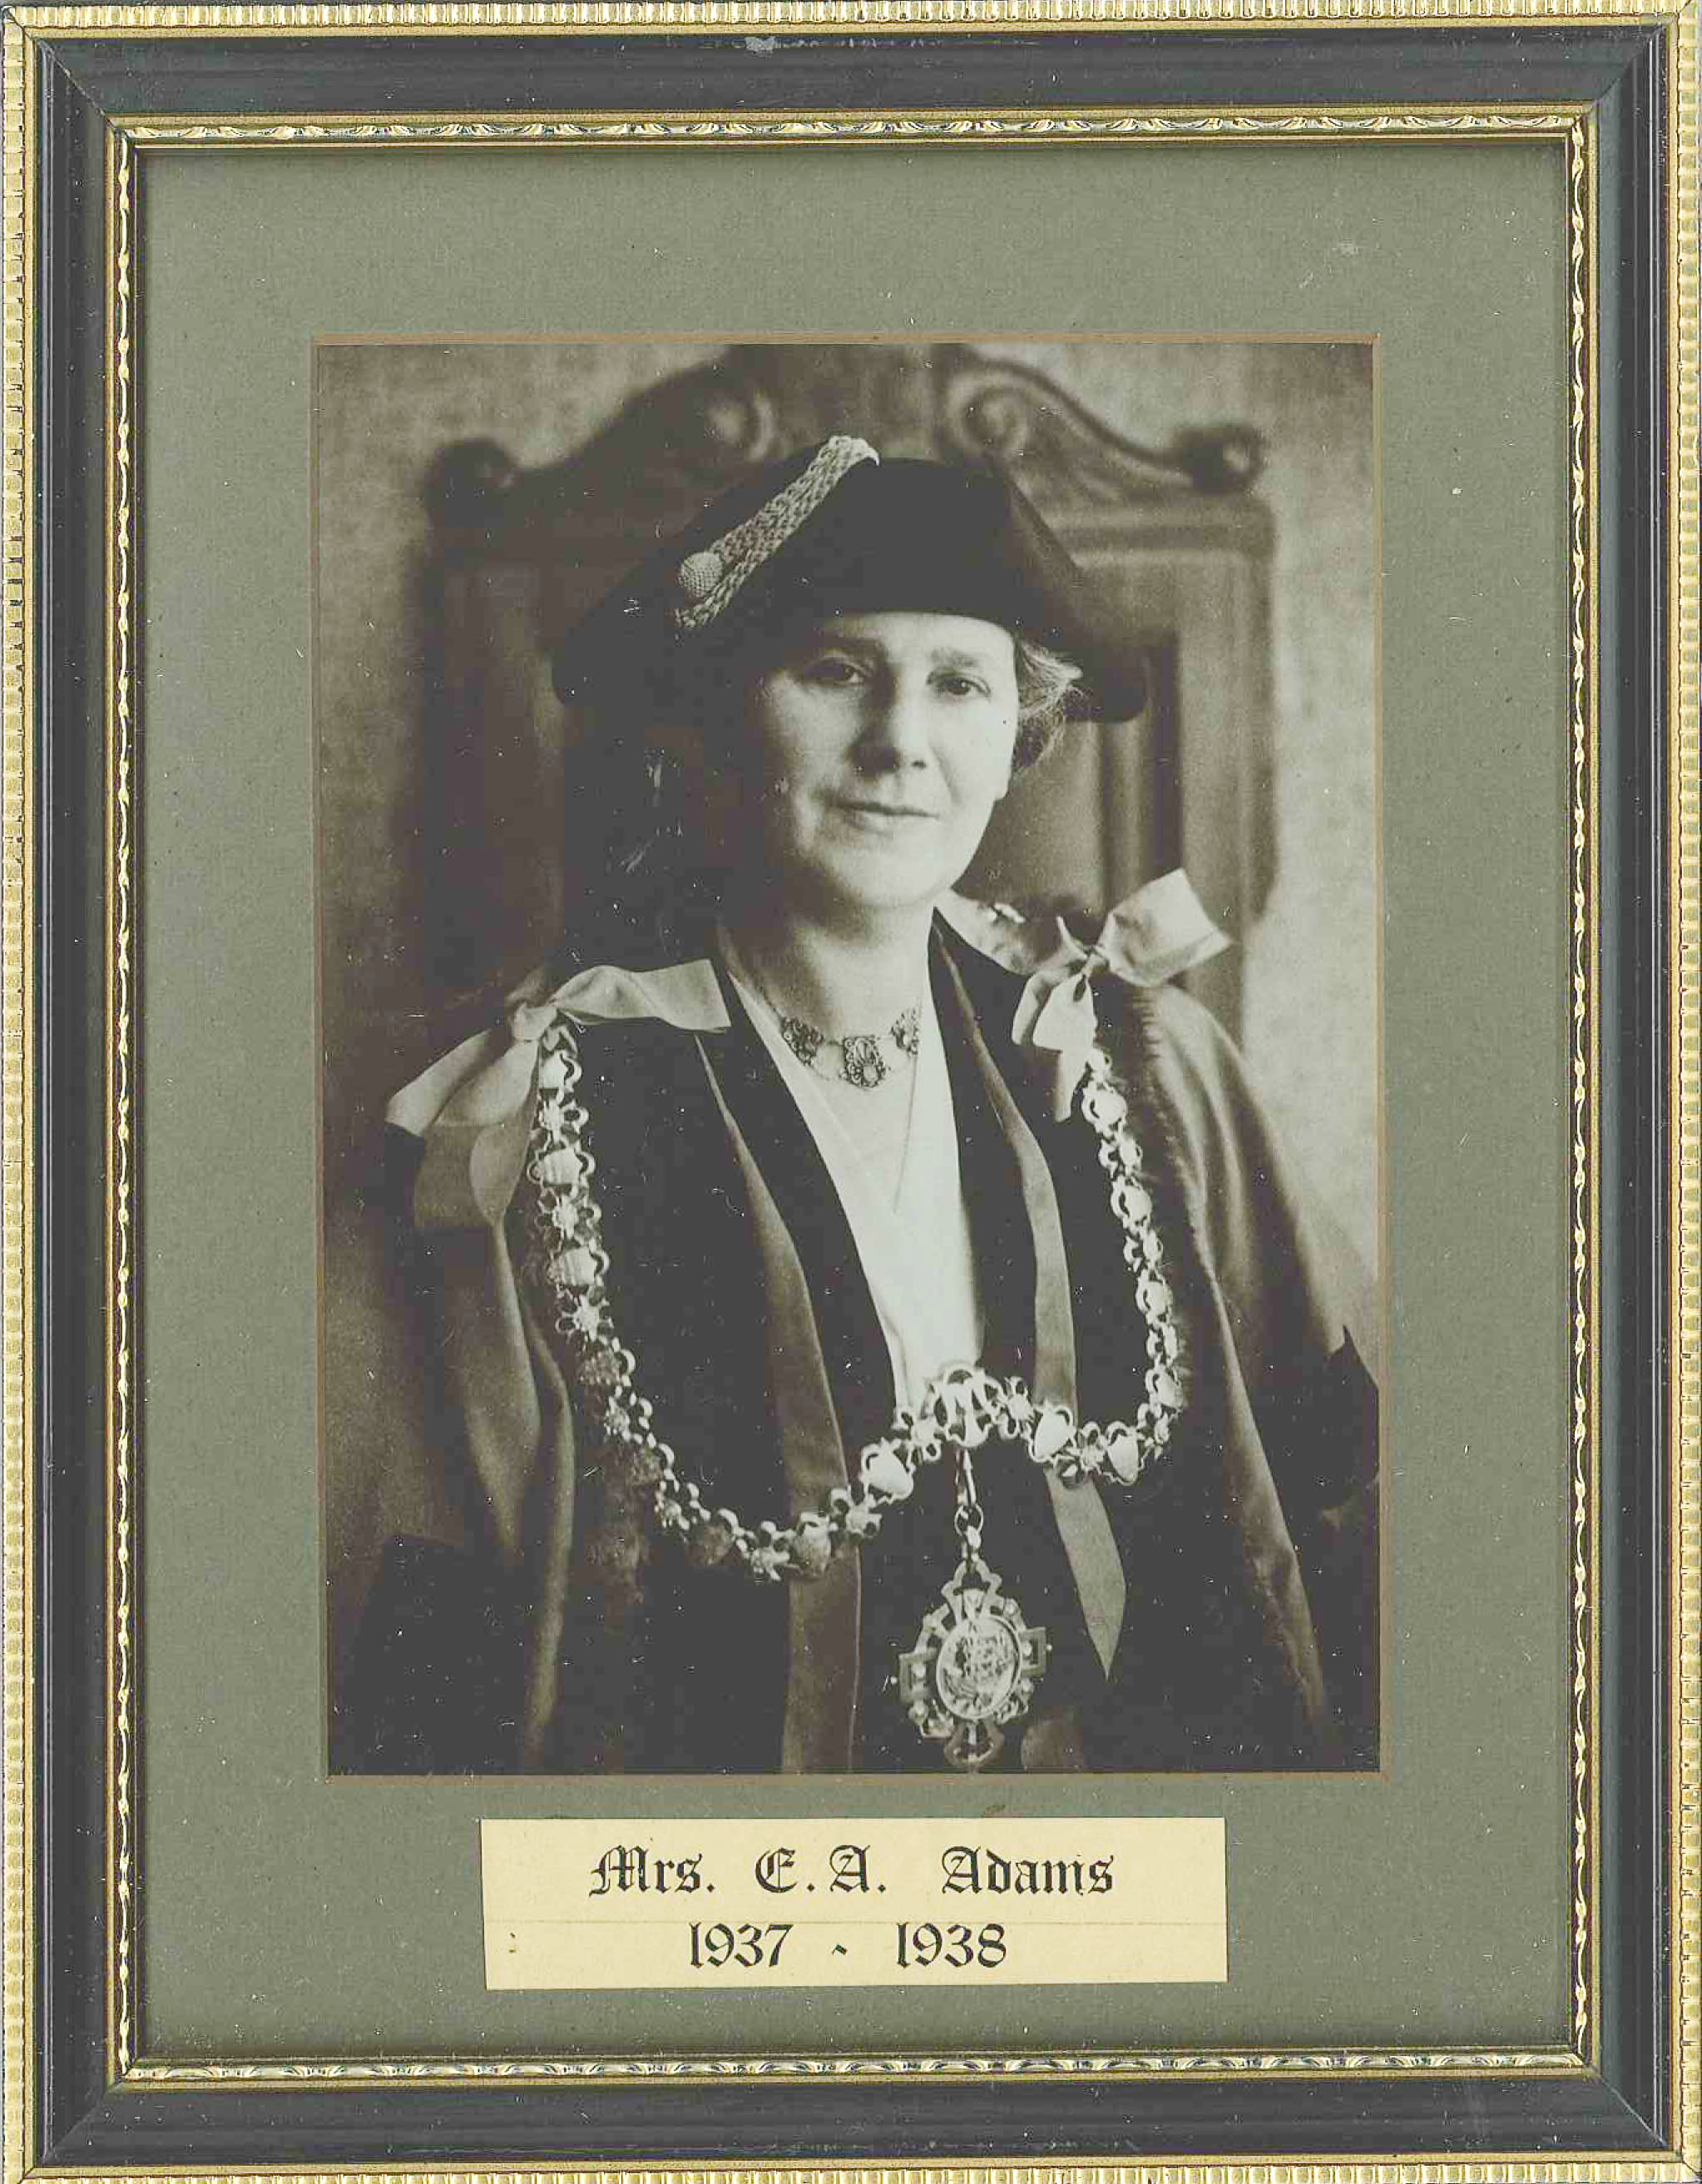 Image of /E.A. Adams (Mrs.)